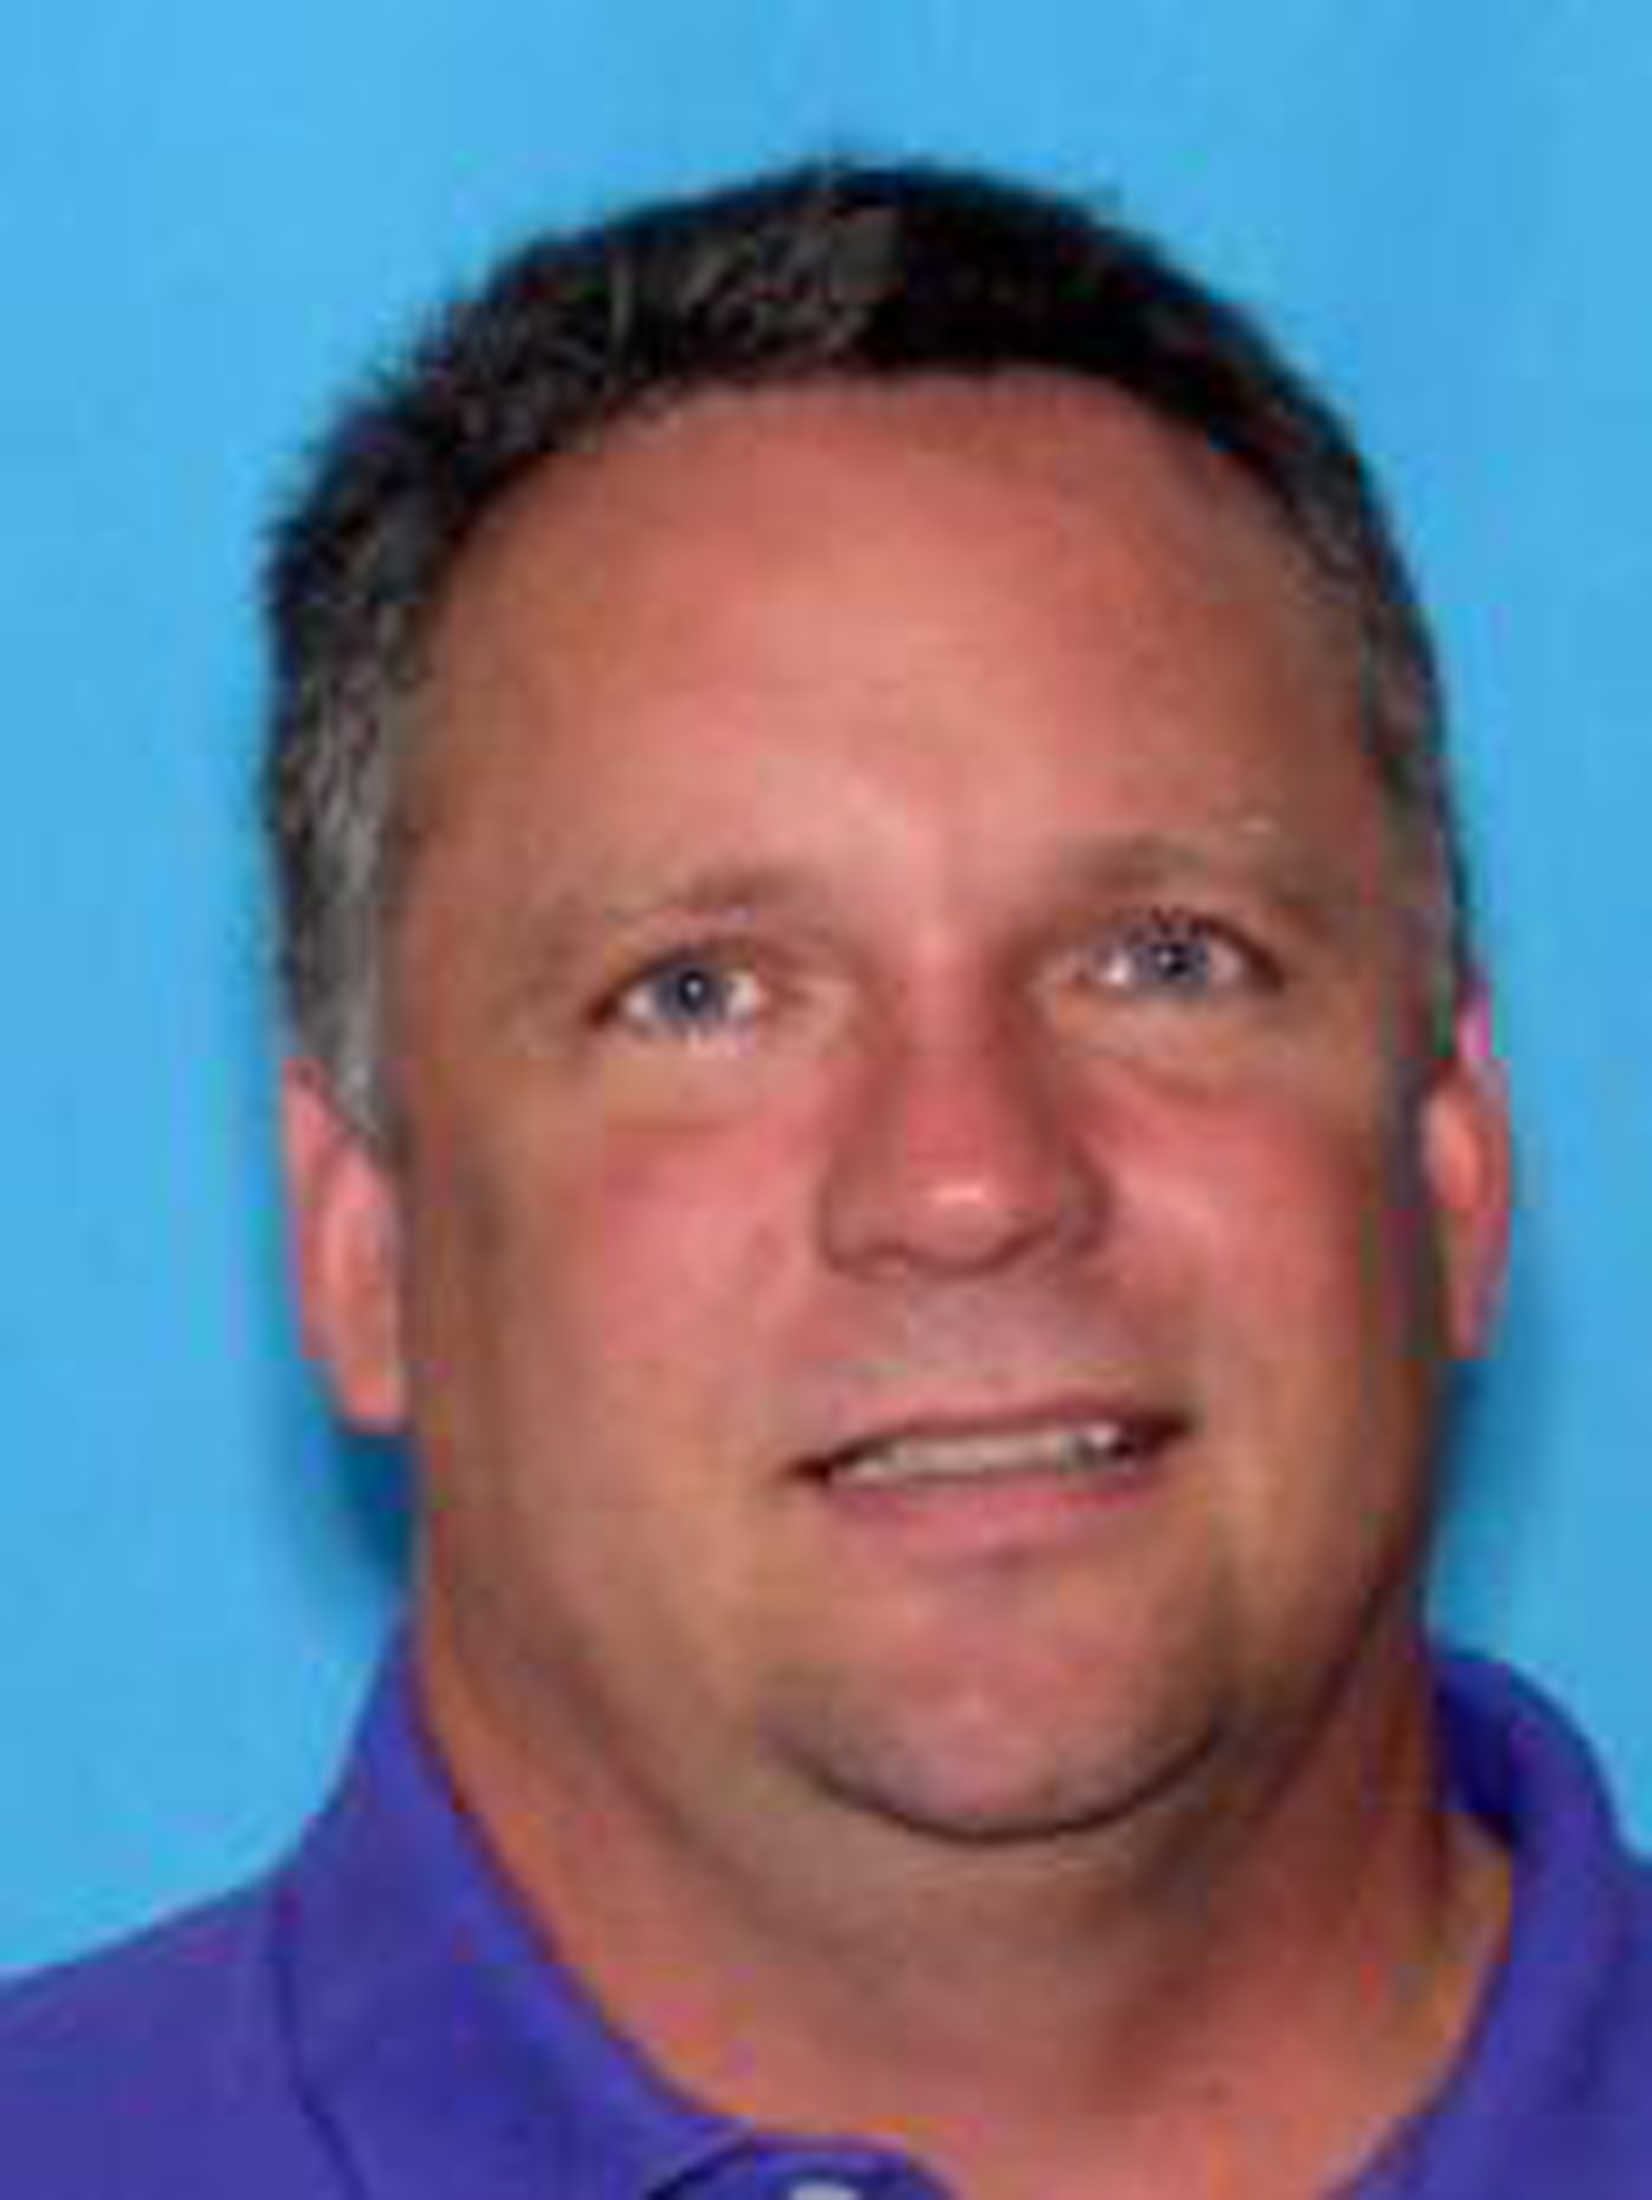 Joe Tesney, 45, of Trussville, Ala., is shown in this Birmingham Police Department photo released on Sept. 23, 2014